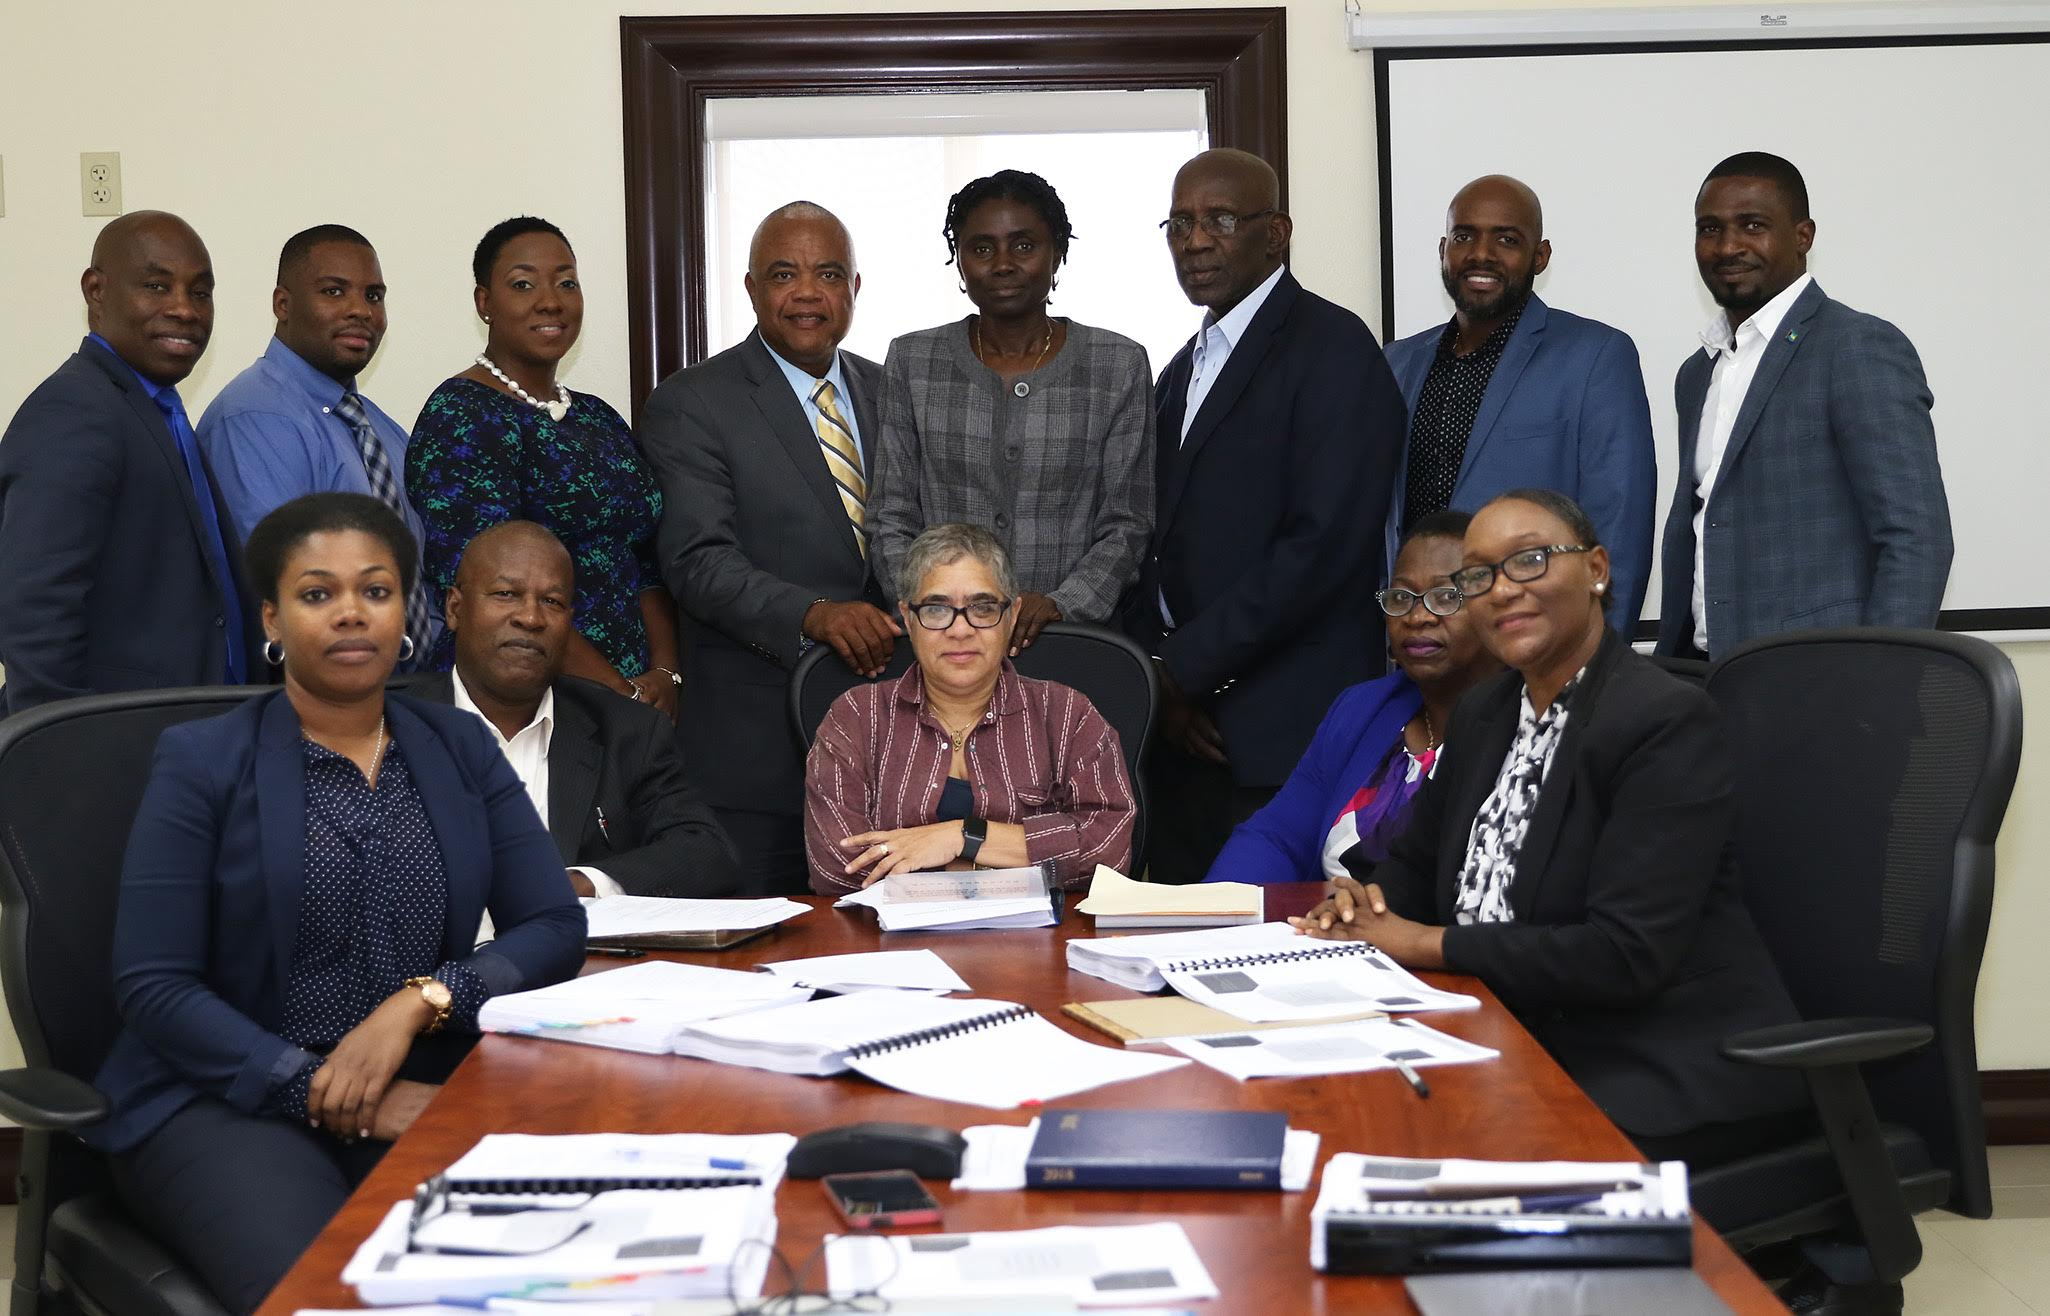 Public Consultation continues for Introduction of Local Government in New Providence